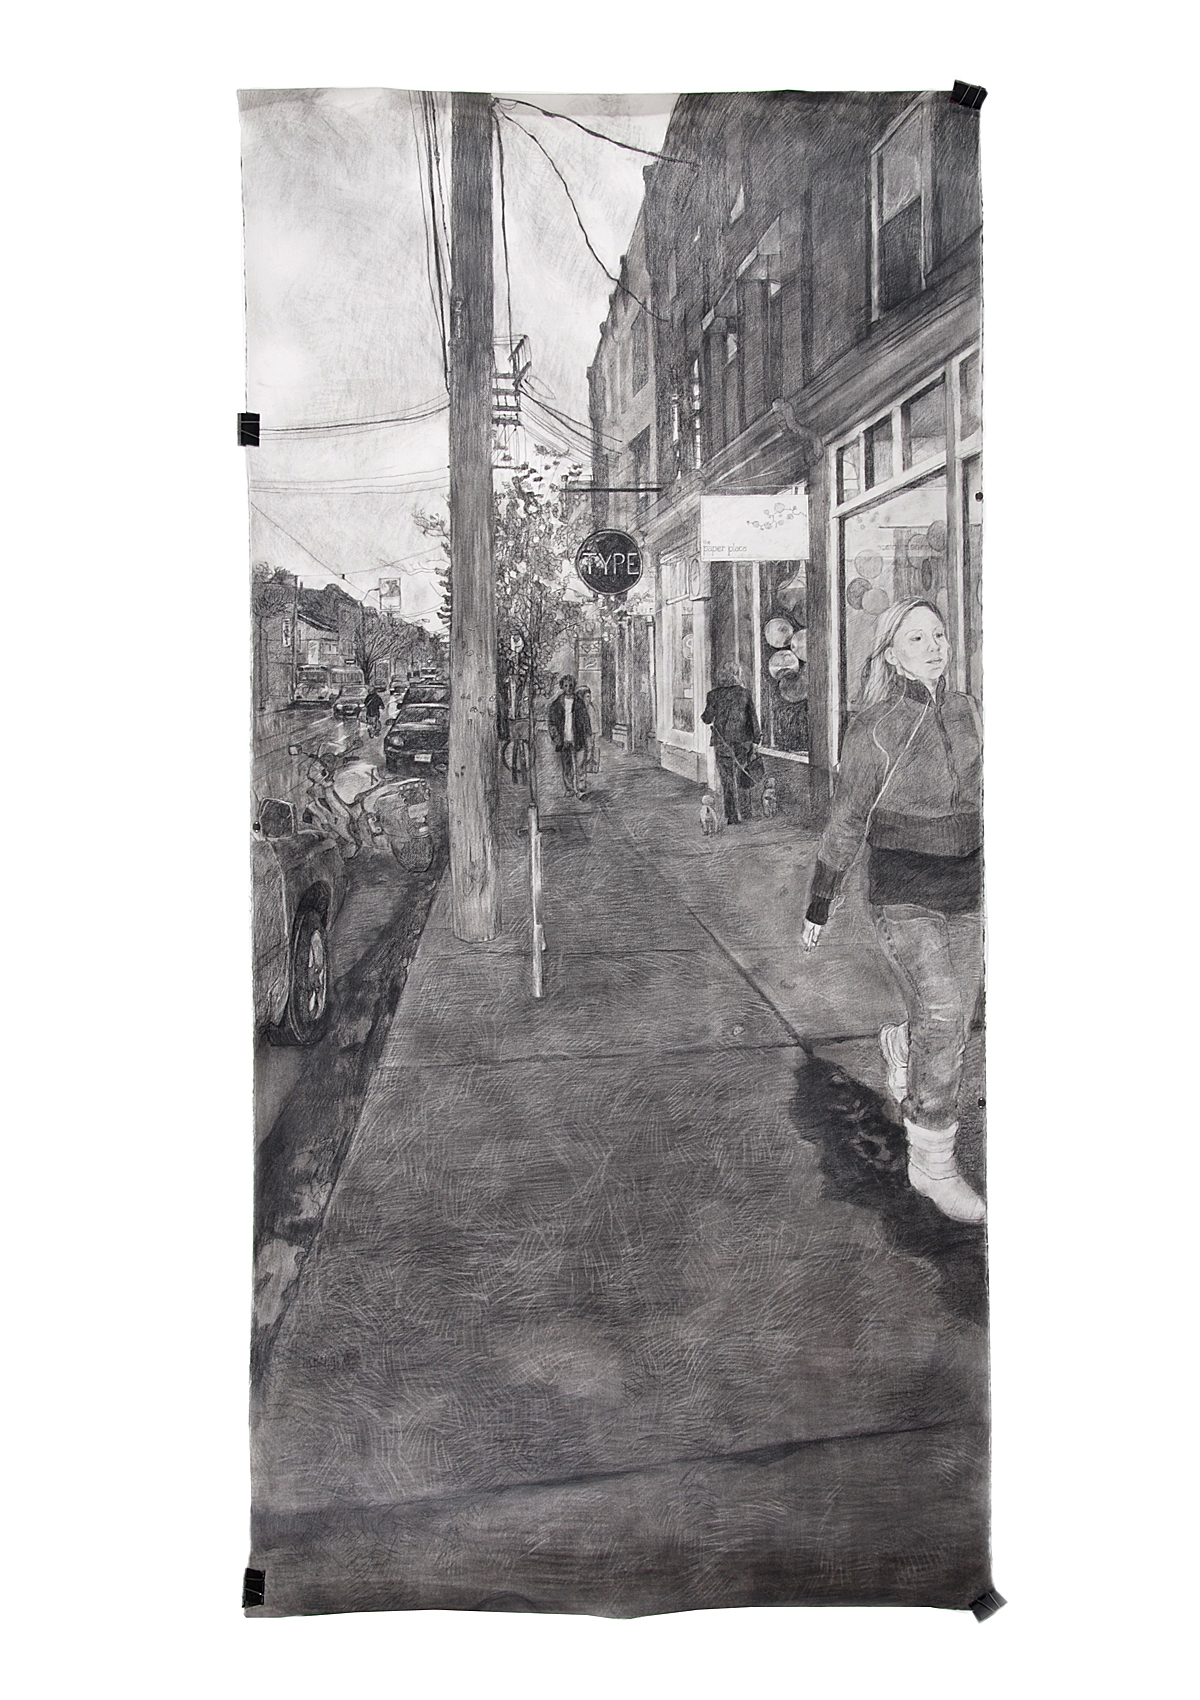 Finding Home: Drawing: Queen St. W., charcoal and acrylic varnish on paper (92 in H x 44.5 in W)